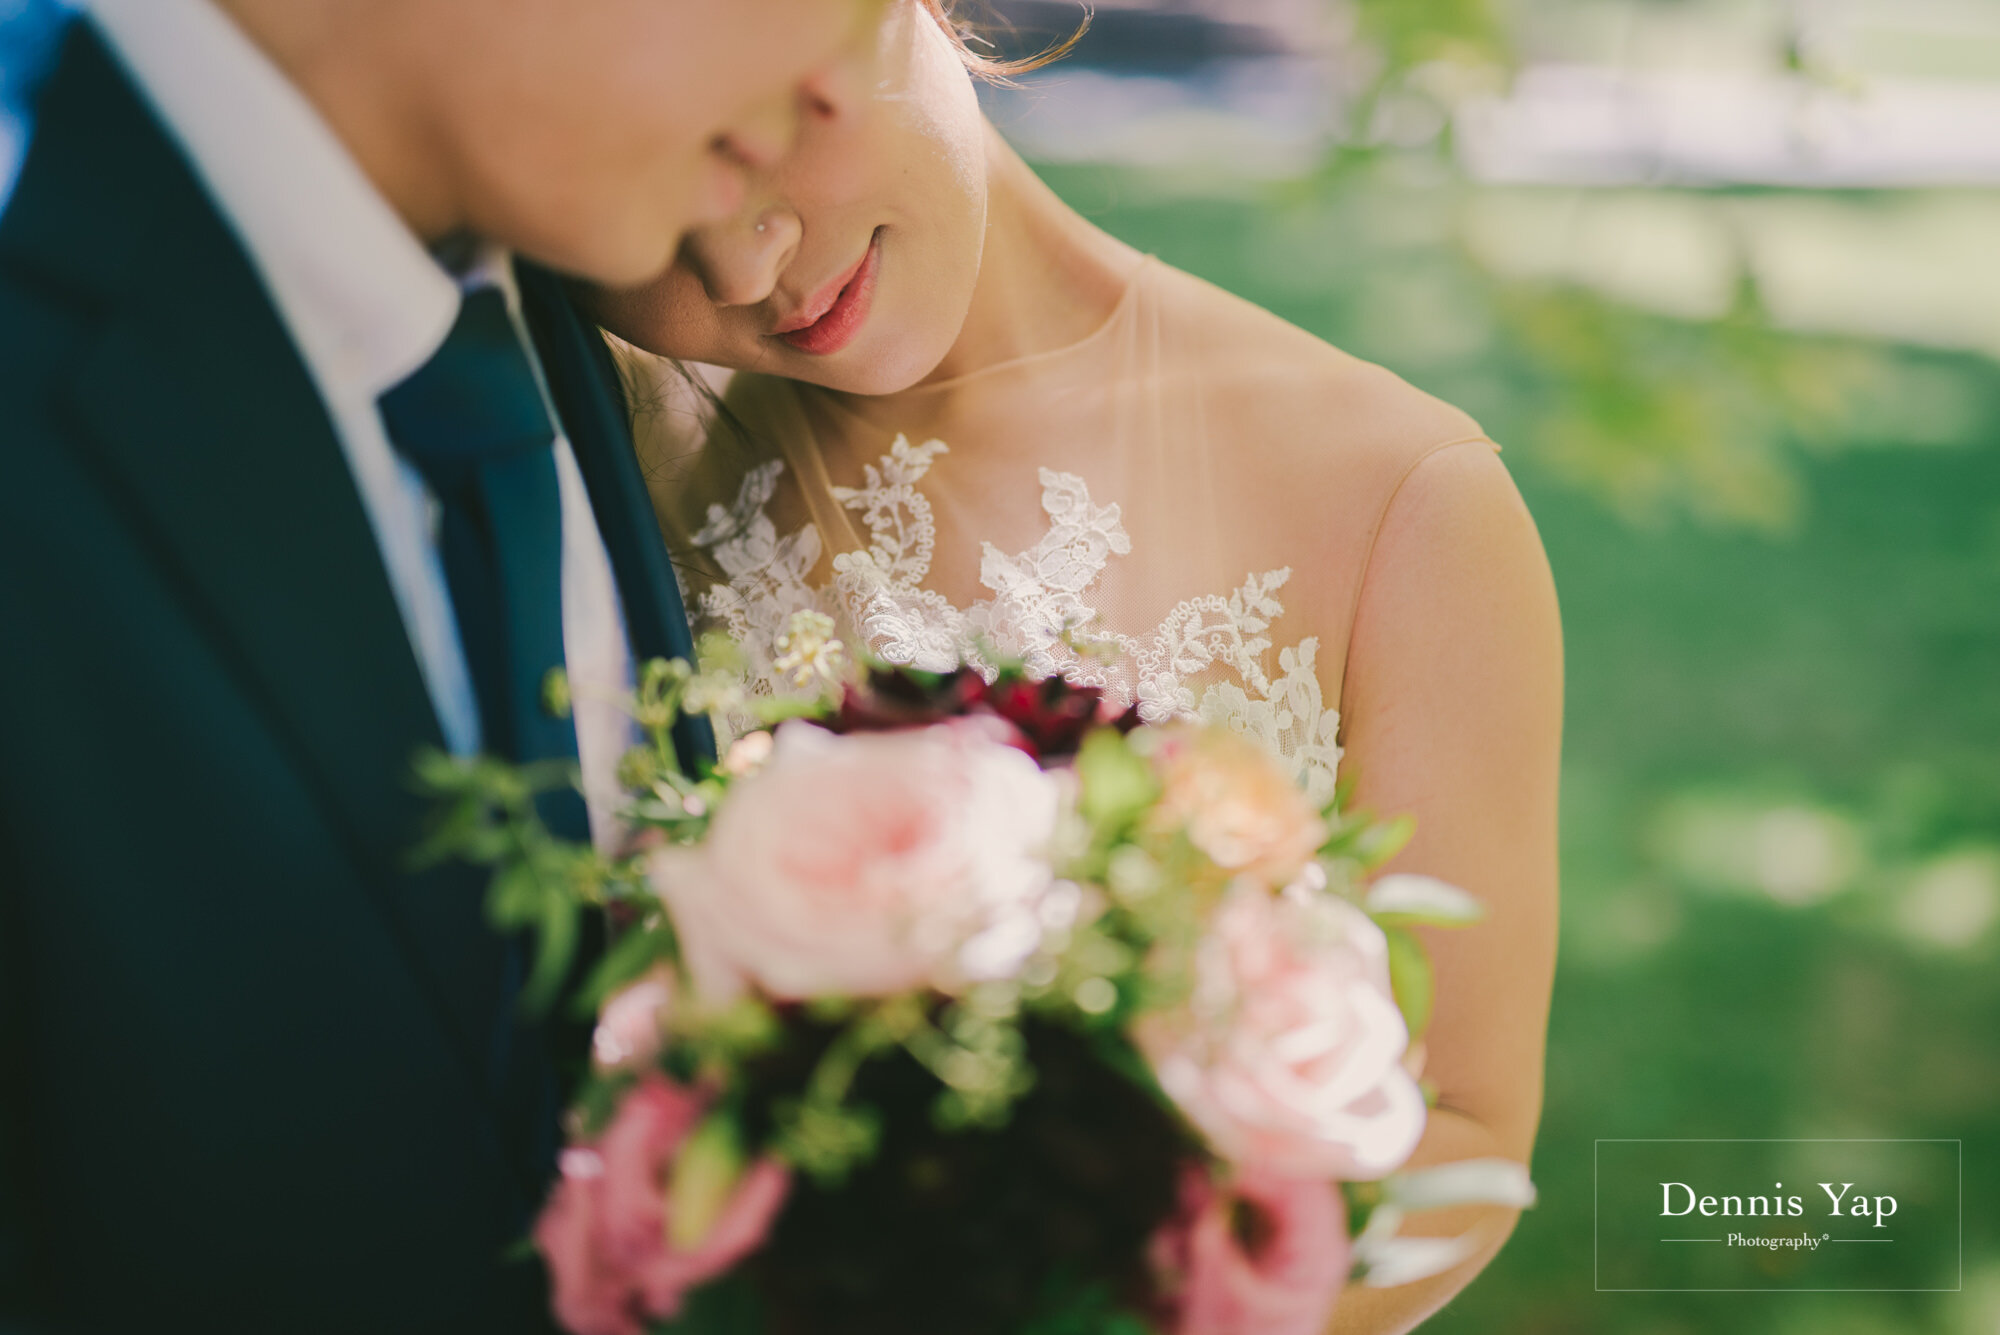 kevin junie melbourne pre wedding lifestyle natural dennis yap photography malaysia top wedding photographer-5.jpg